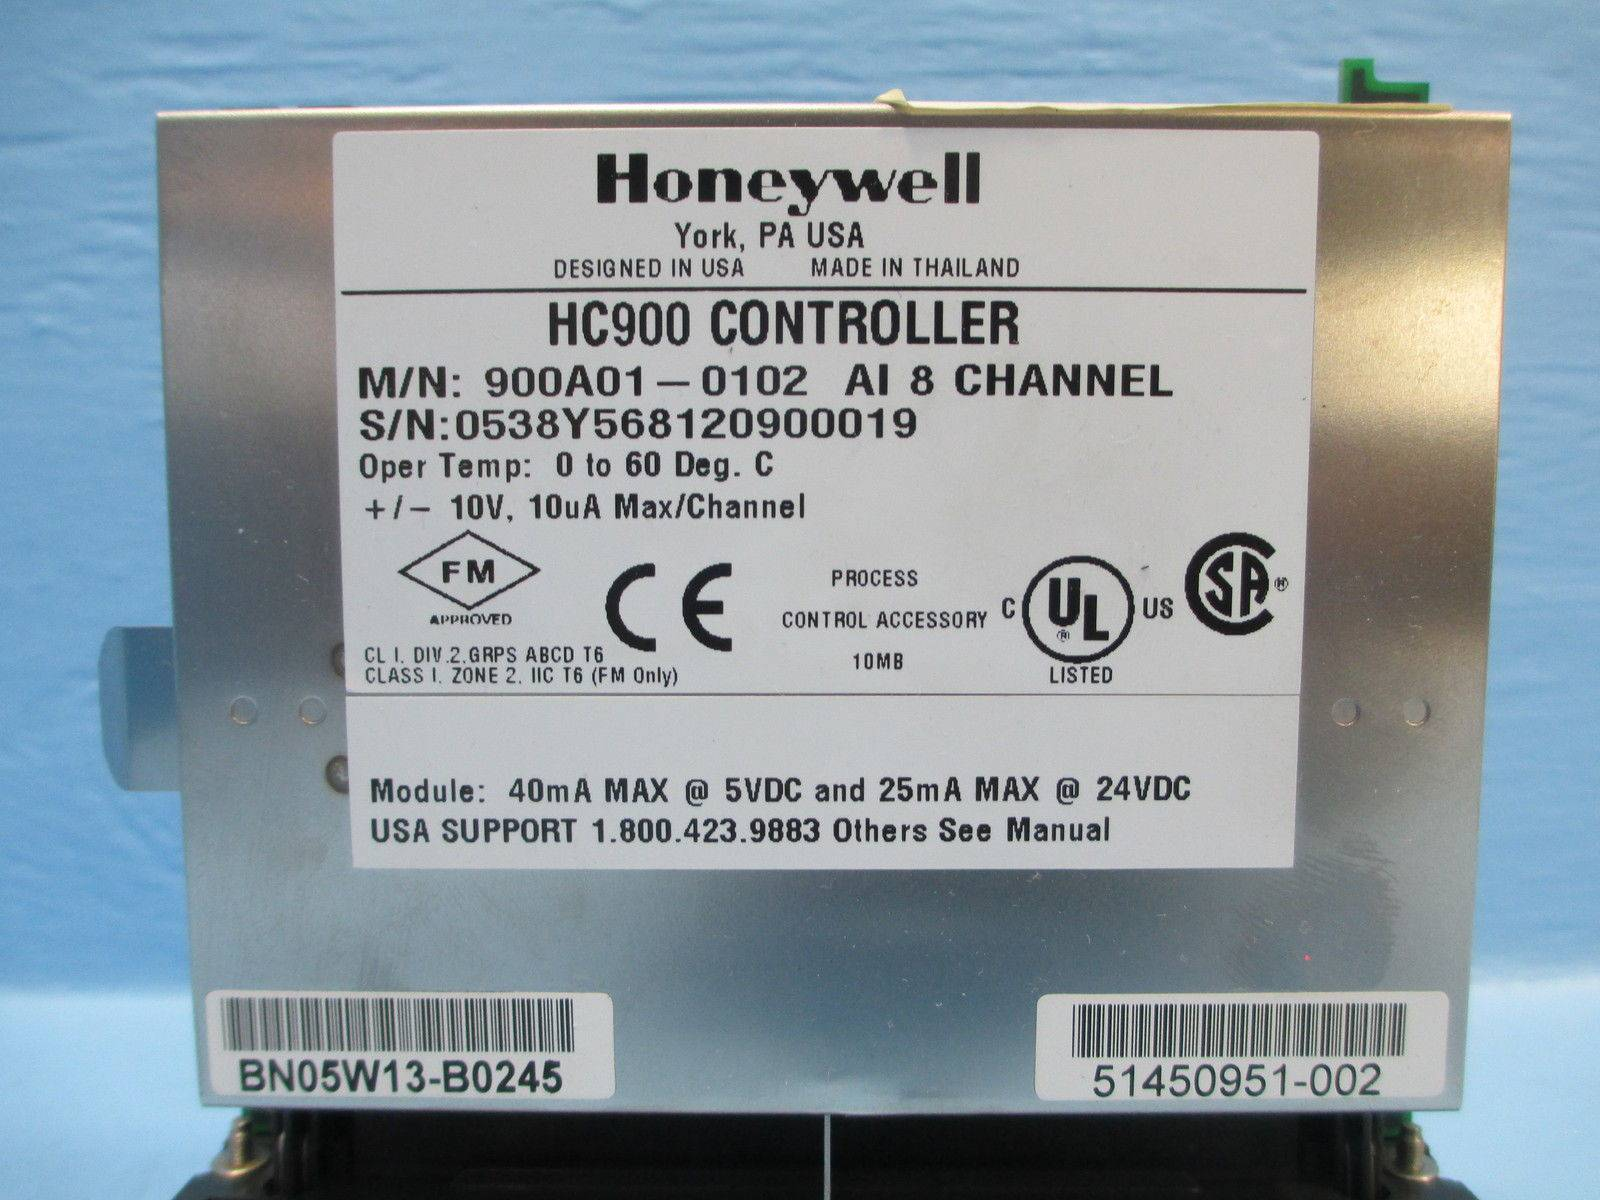 honeywellhc900cont_93644_honeywell_900a01 01029__2 honeywell hc900 controller 900a01 0102 analog input 8 900a010102  at mifinder.co